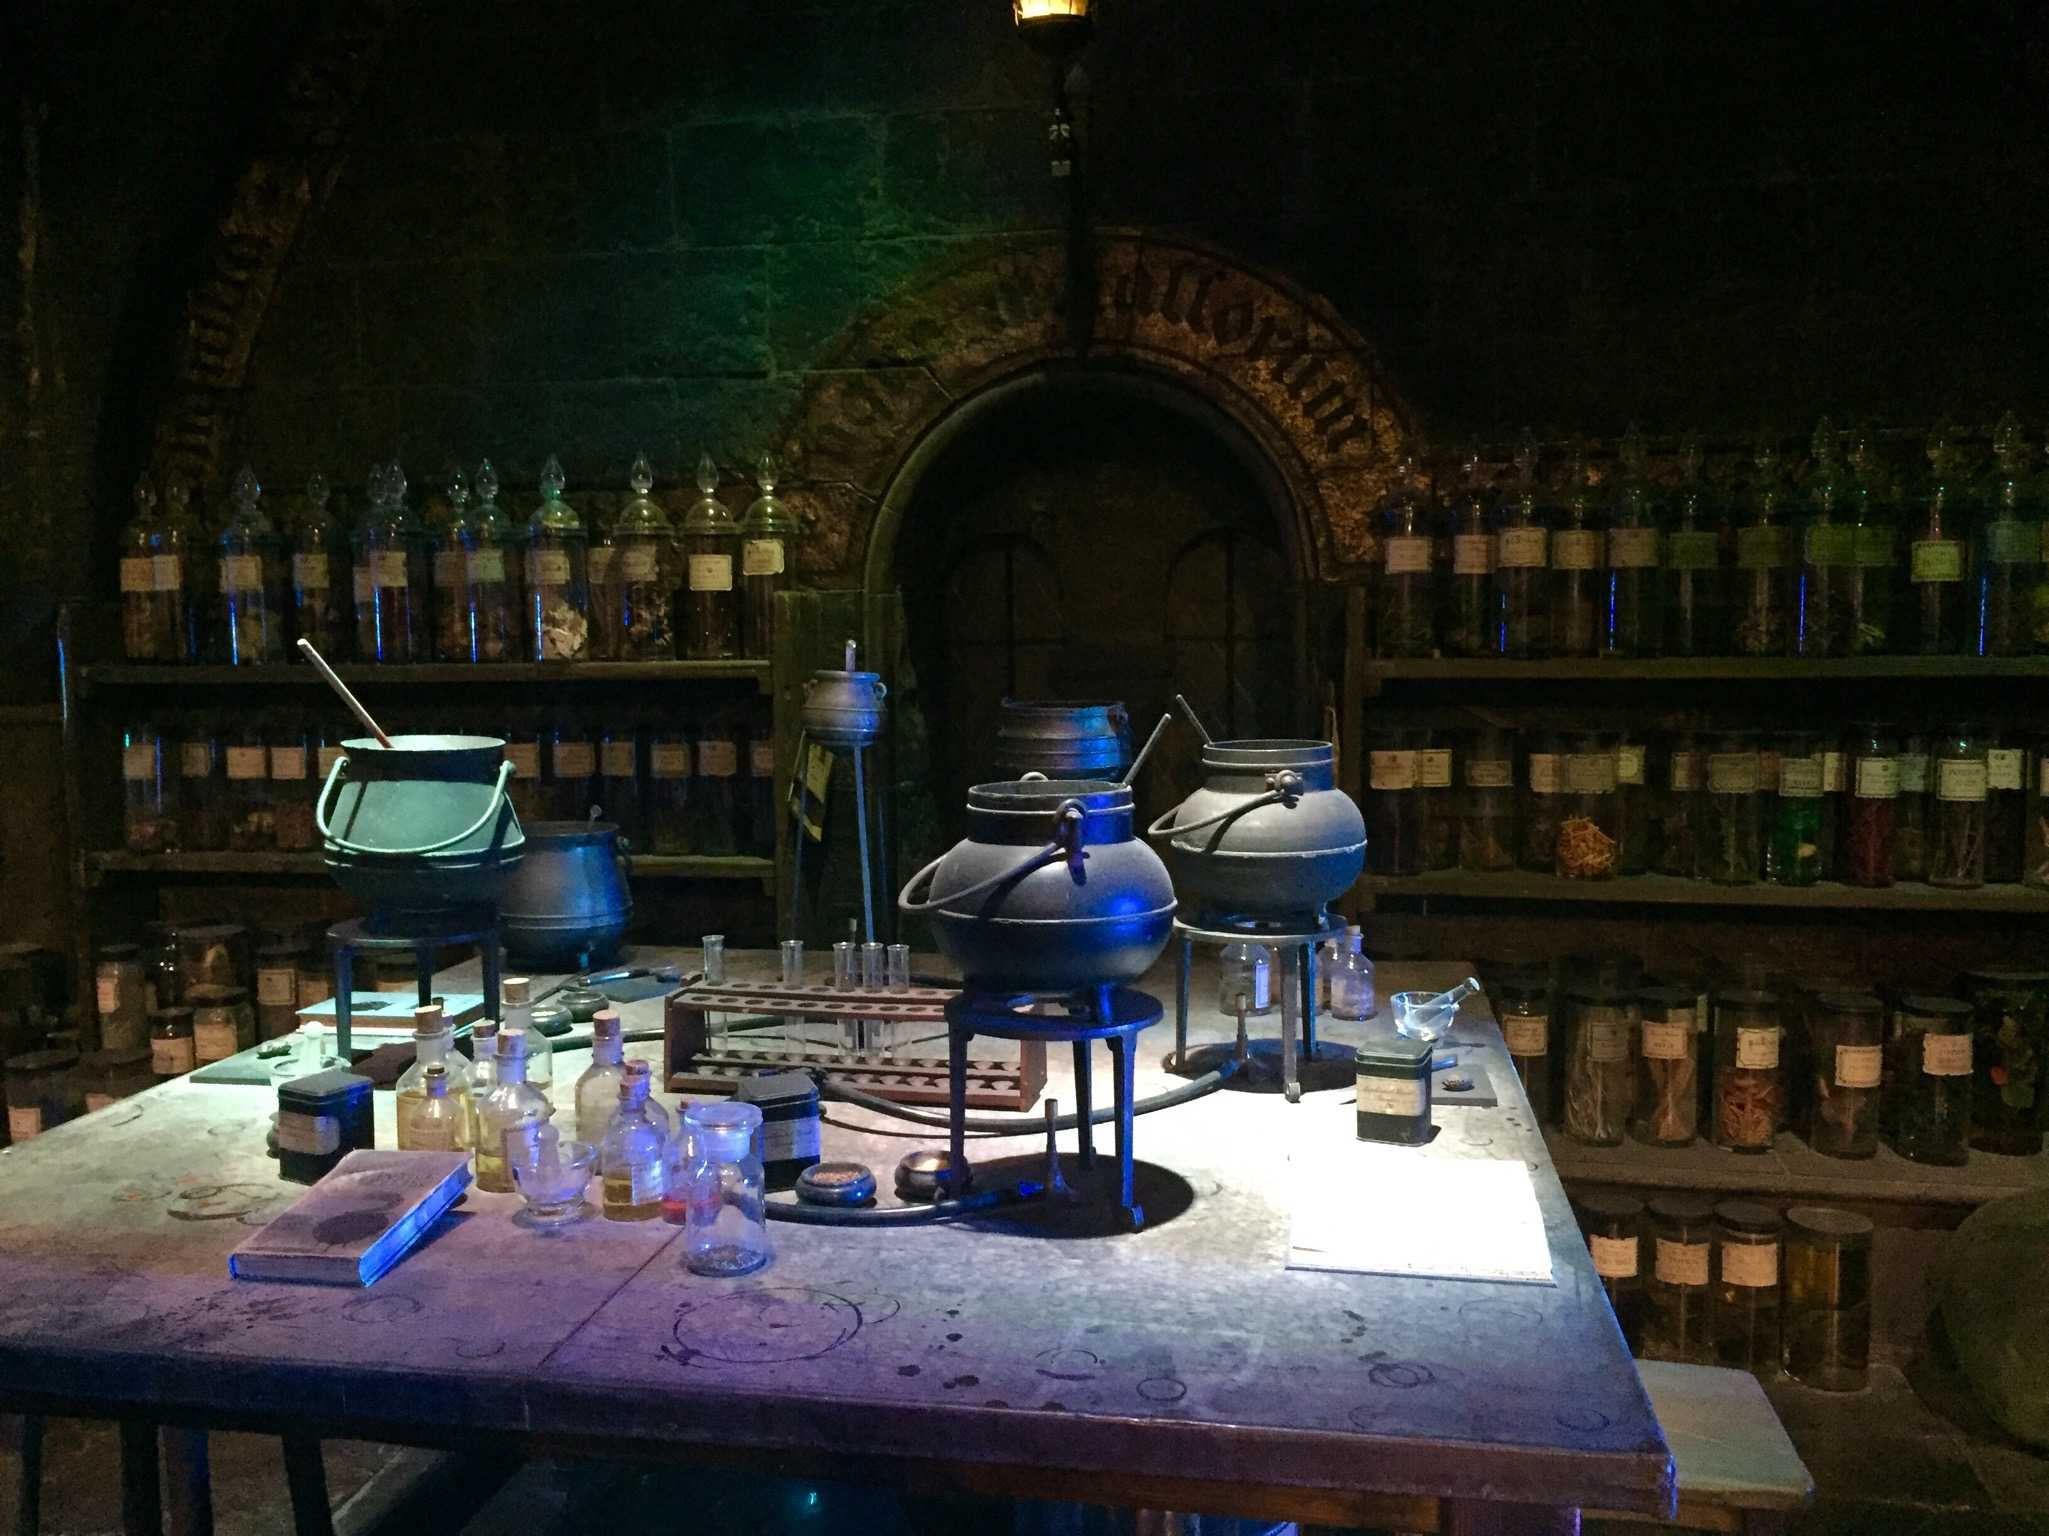 STUDY, STUDY, STUDY: Hogwarts isn't all fun and games. You will have to study significantly to pass those exams at the end of the year (the notorious O.W.L.s and N.E.W.T.s. And I heard that they haven't had a decent Potions teacher since Severus Snape.).